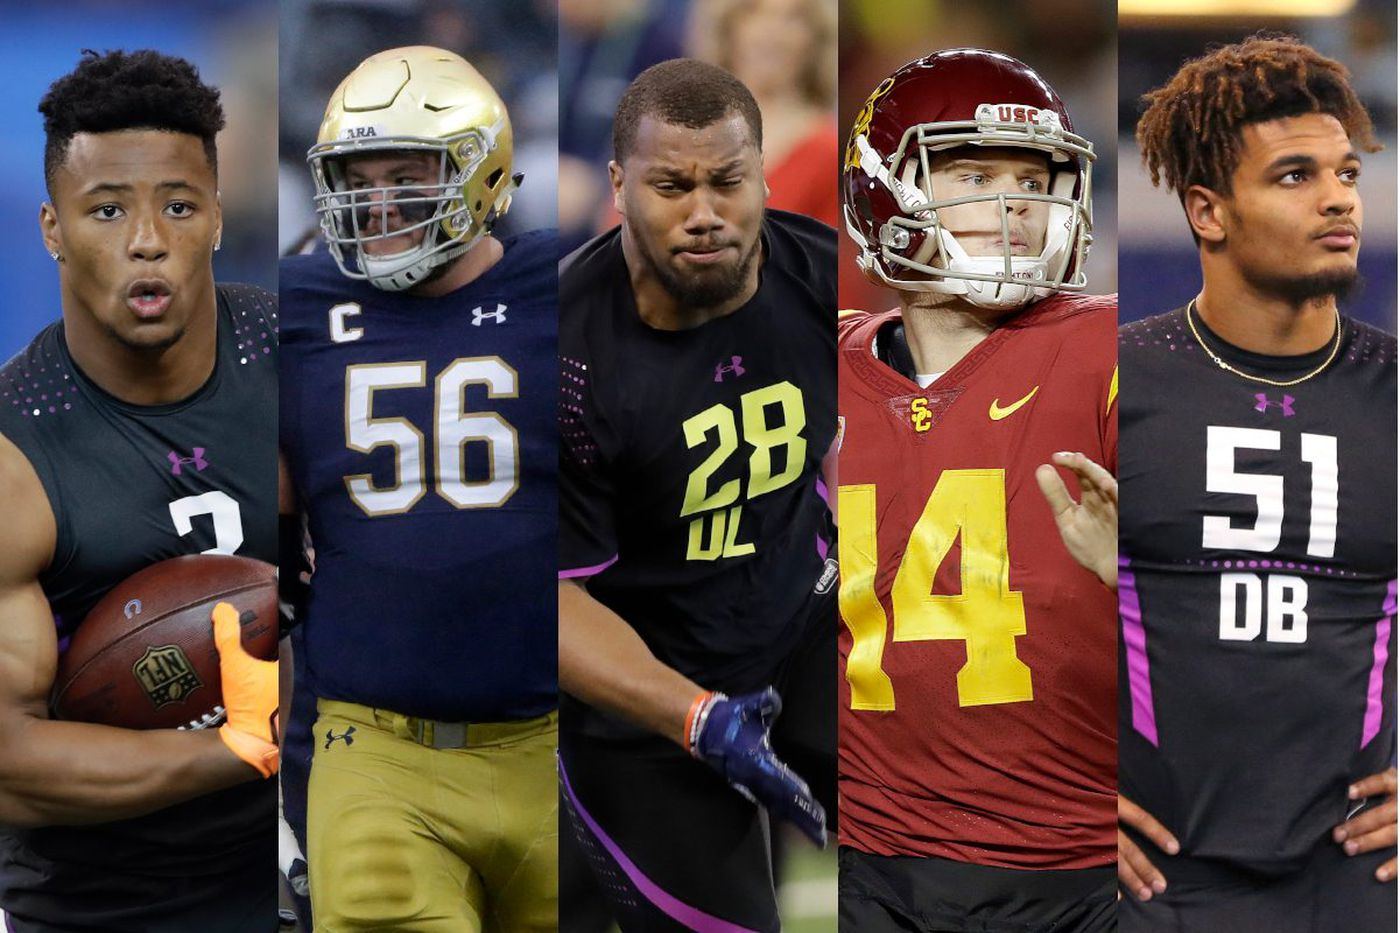 NFL draft: Ranking the top 50 players | Paul Domowitch